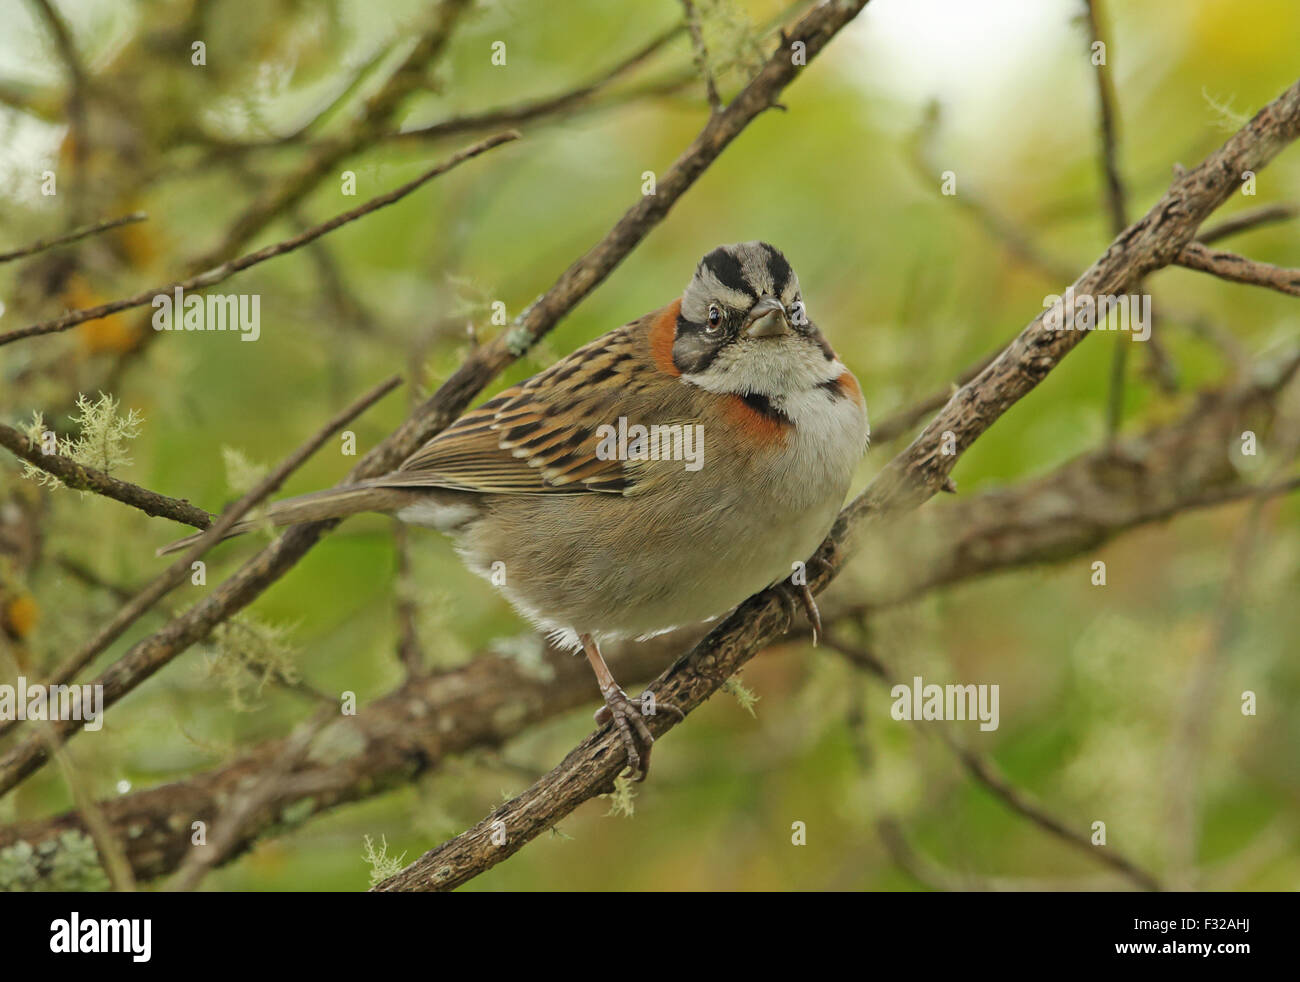 Rufous-collared Sparrow (Zonotrichia capensis subtorquata) adult, perched on twig, Atlantic Rainforest, Pico da Stock Photo